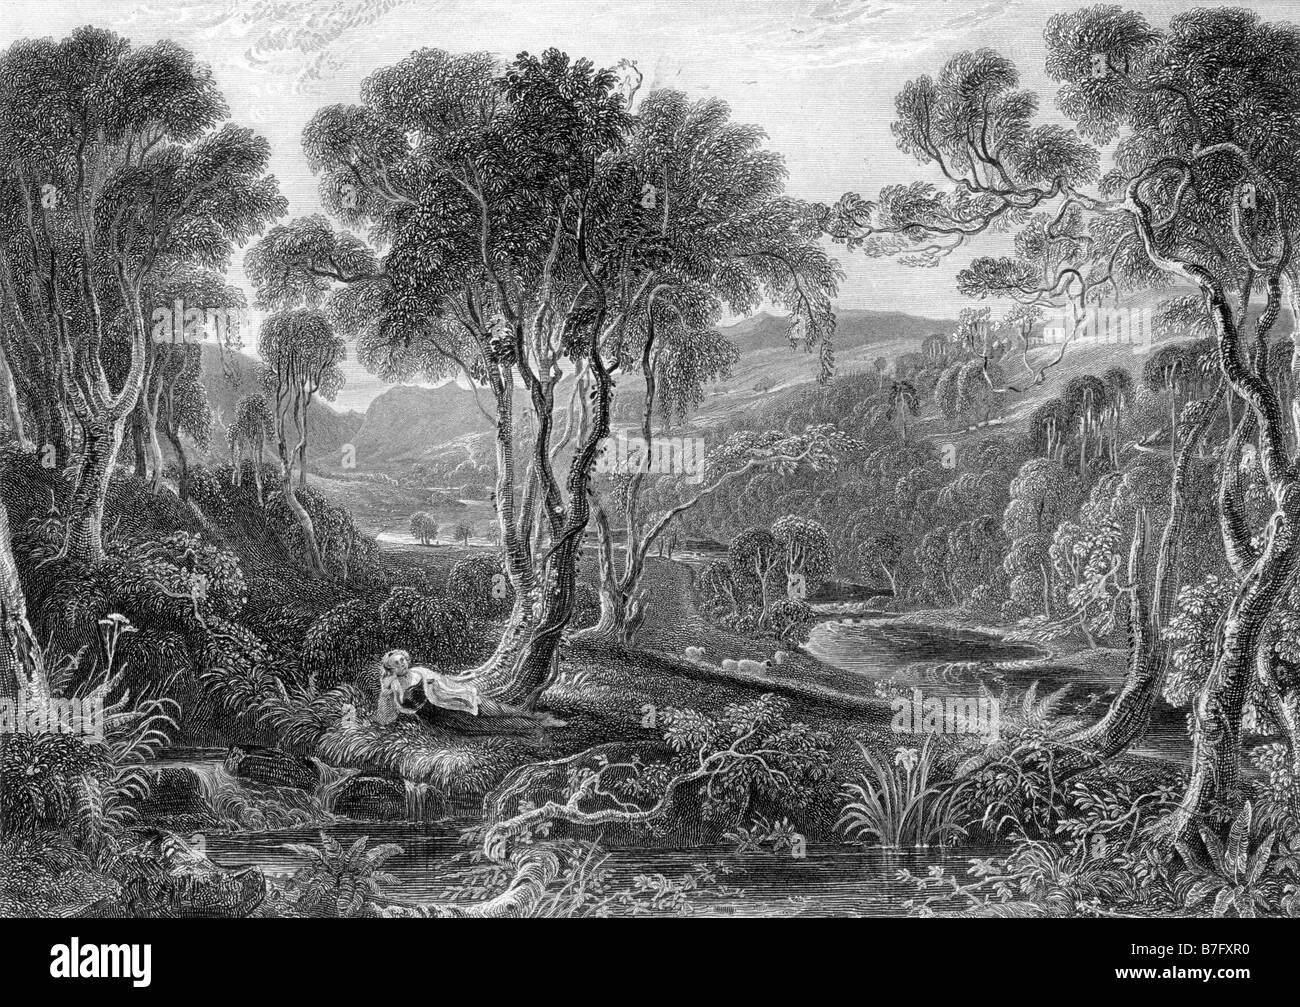 Glen Afton Dumfrieshire Engraving by David Octavius Hill 1802 to 1870 19th Century Illustration - Stock Image